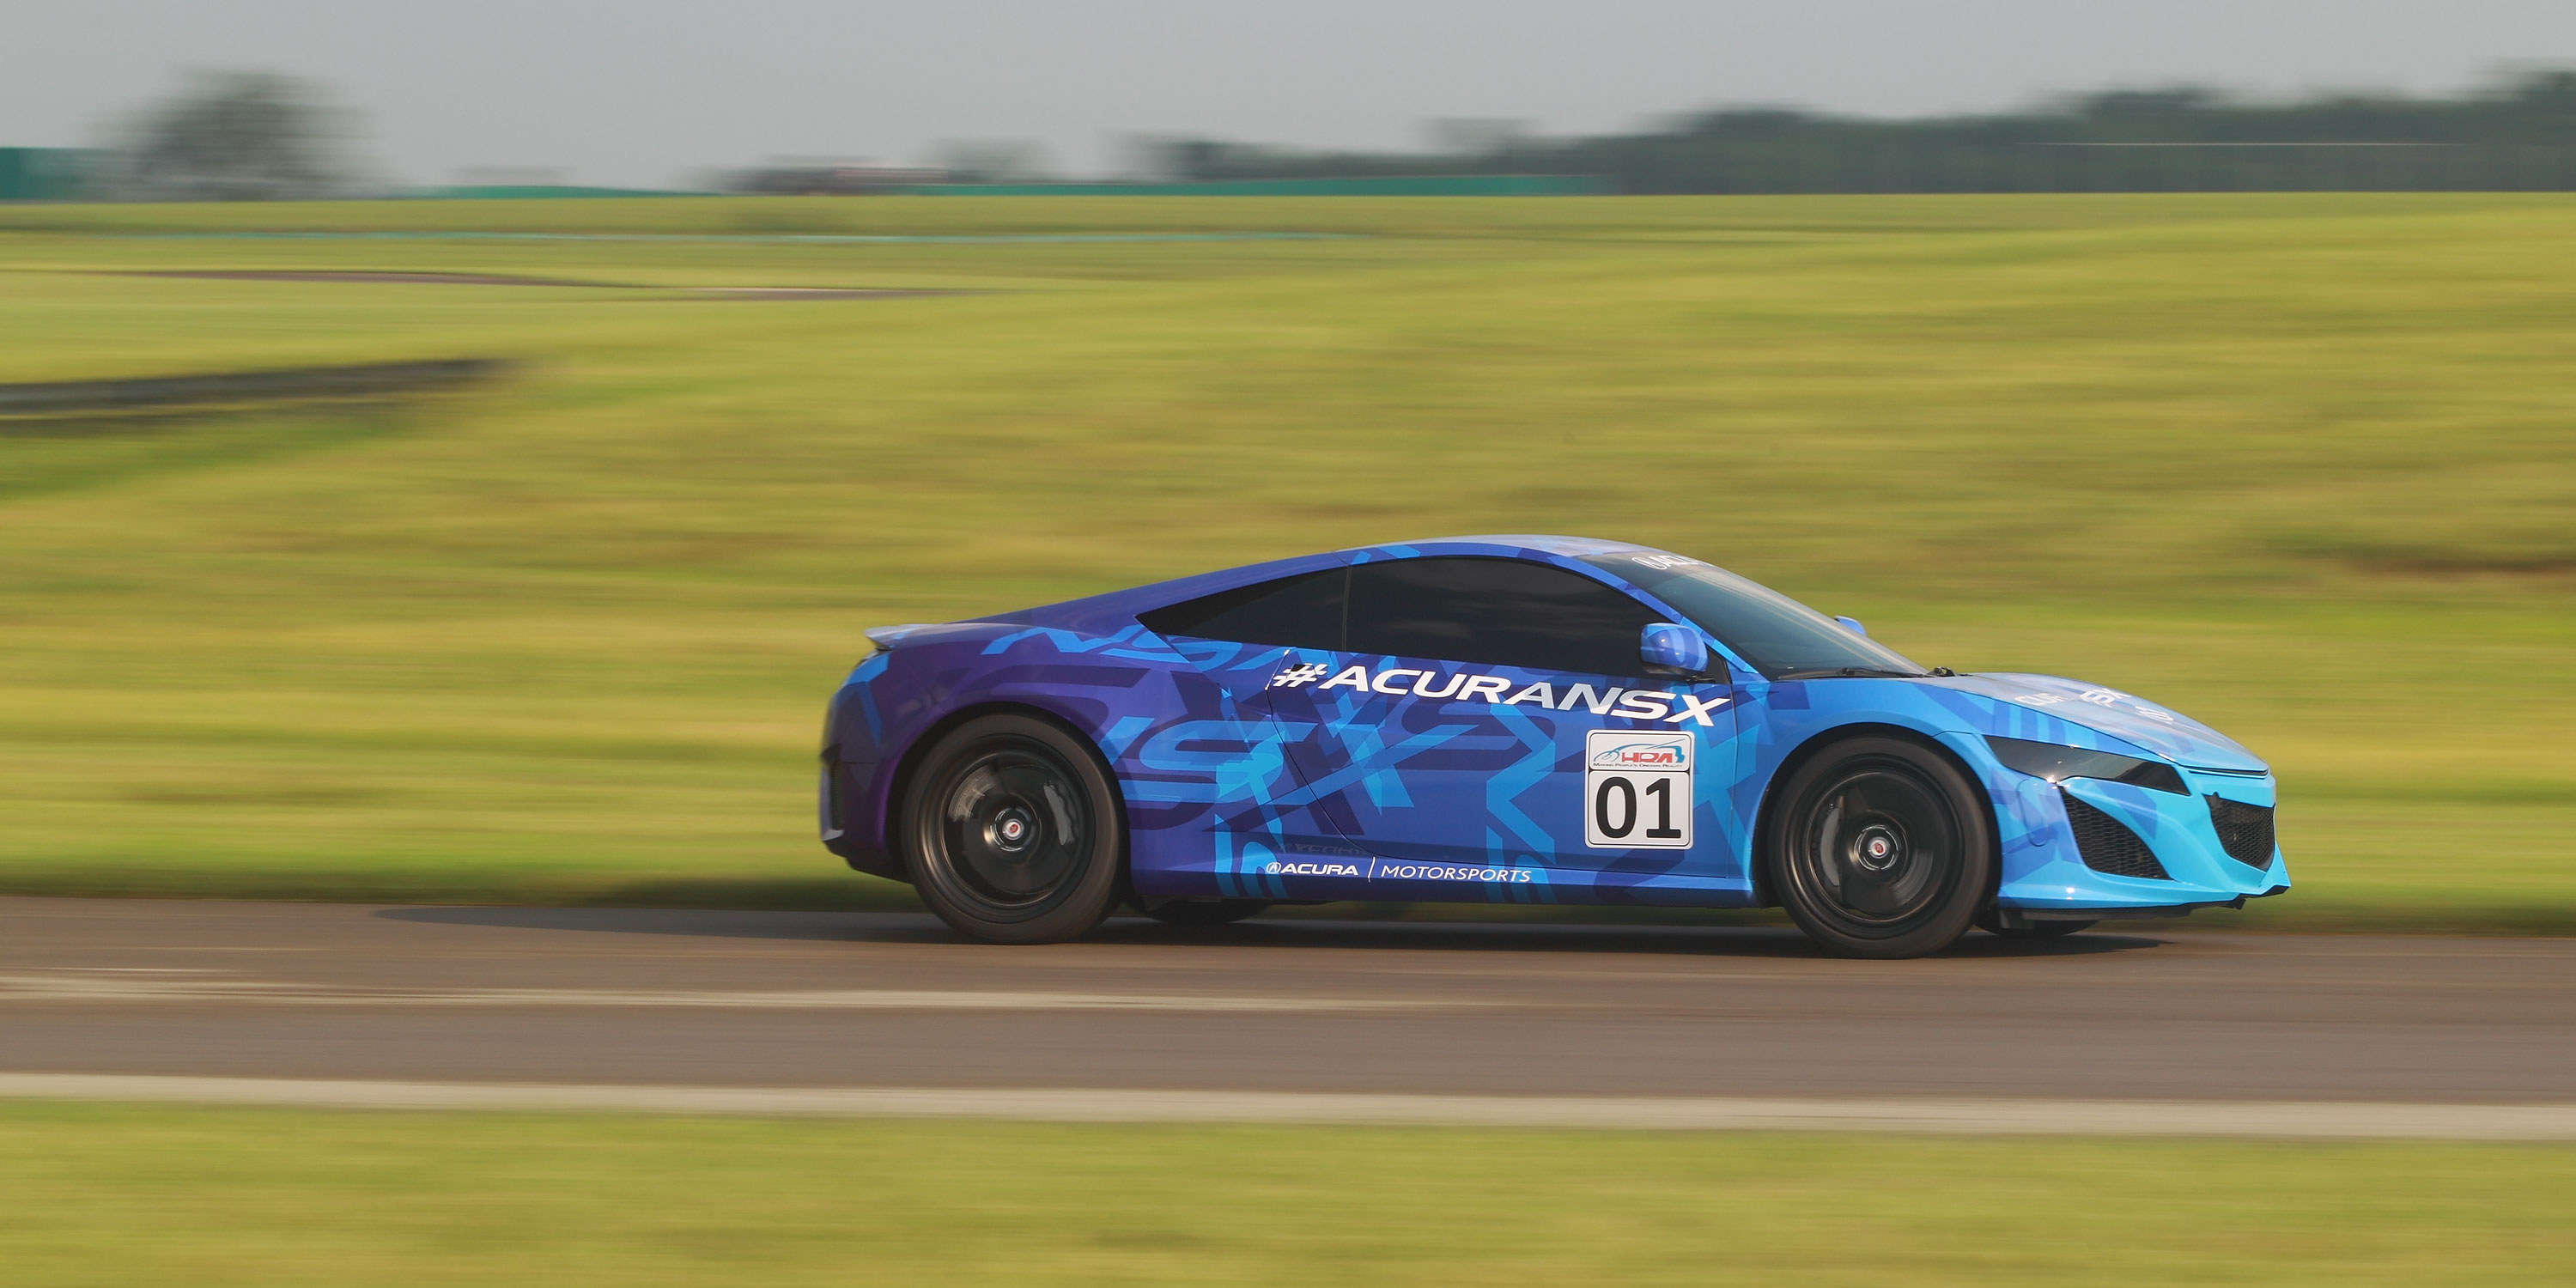 2014-nsx-exterior-prototype-in-mid-ohio-indycar-blue-graphics-straight-at-speed-3_hires